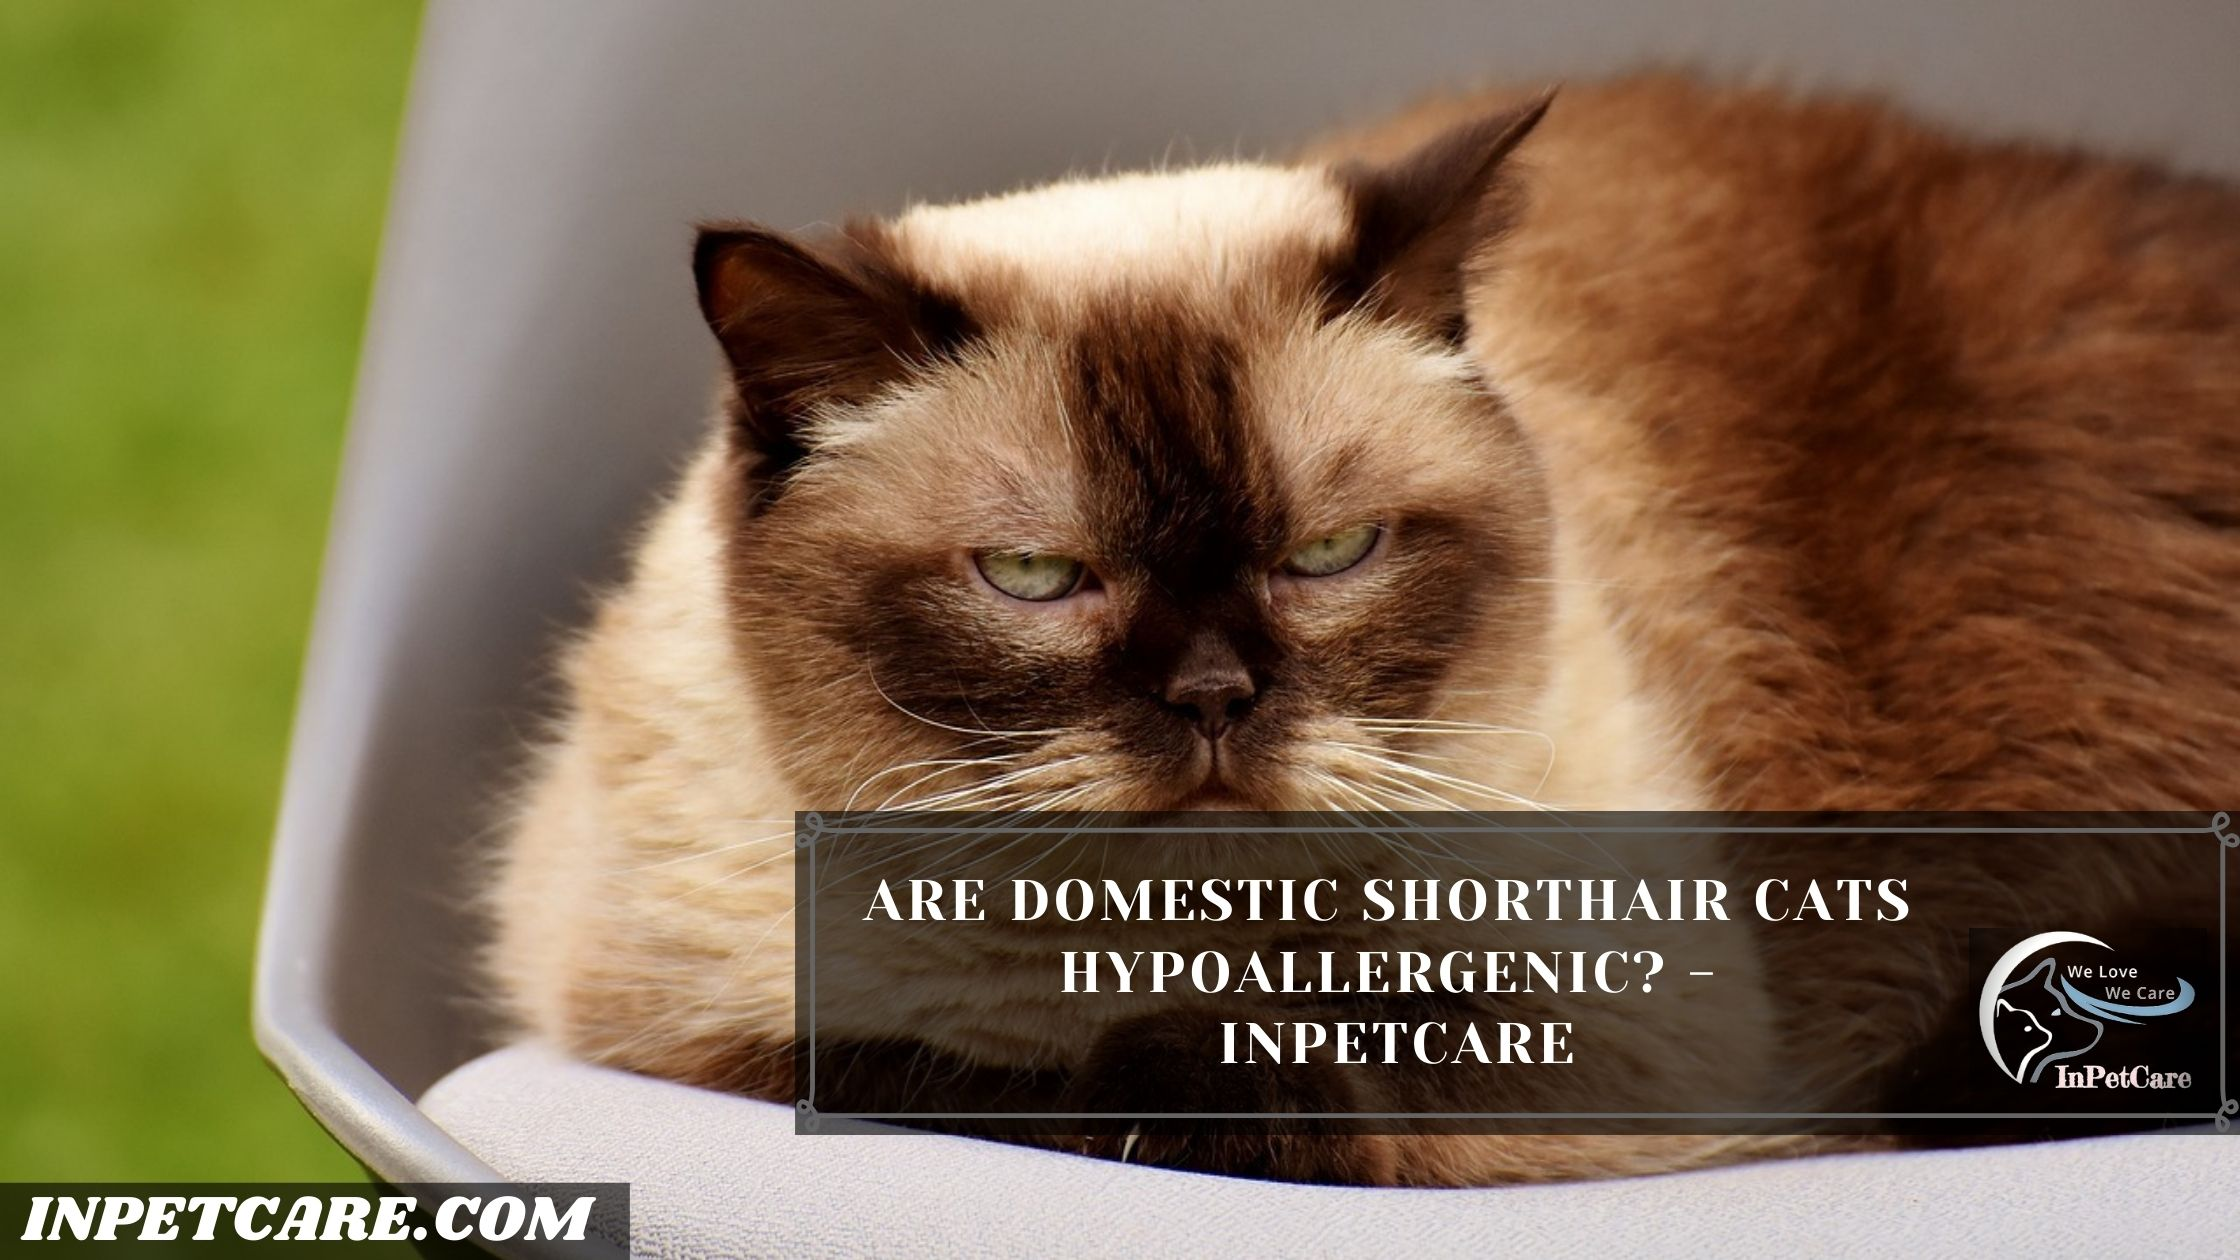 Are Domestic Shorthair Cats Hypoallergenic? - InPetCare